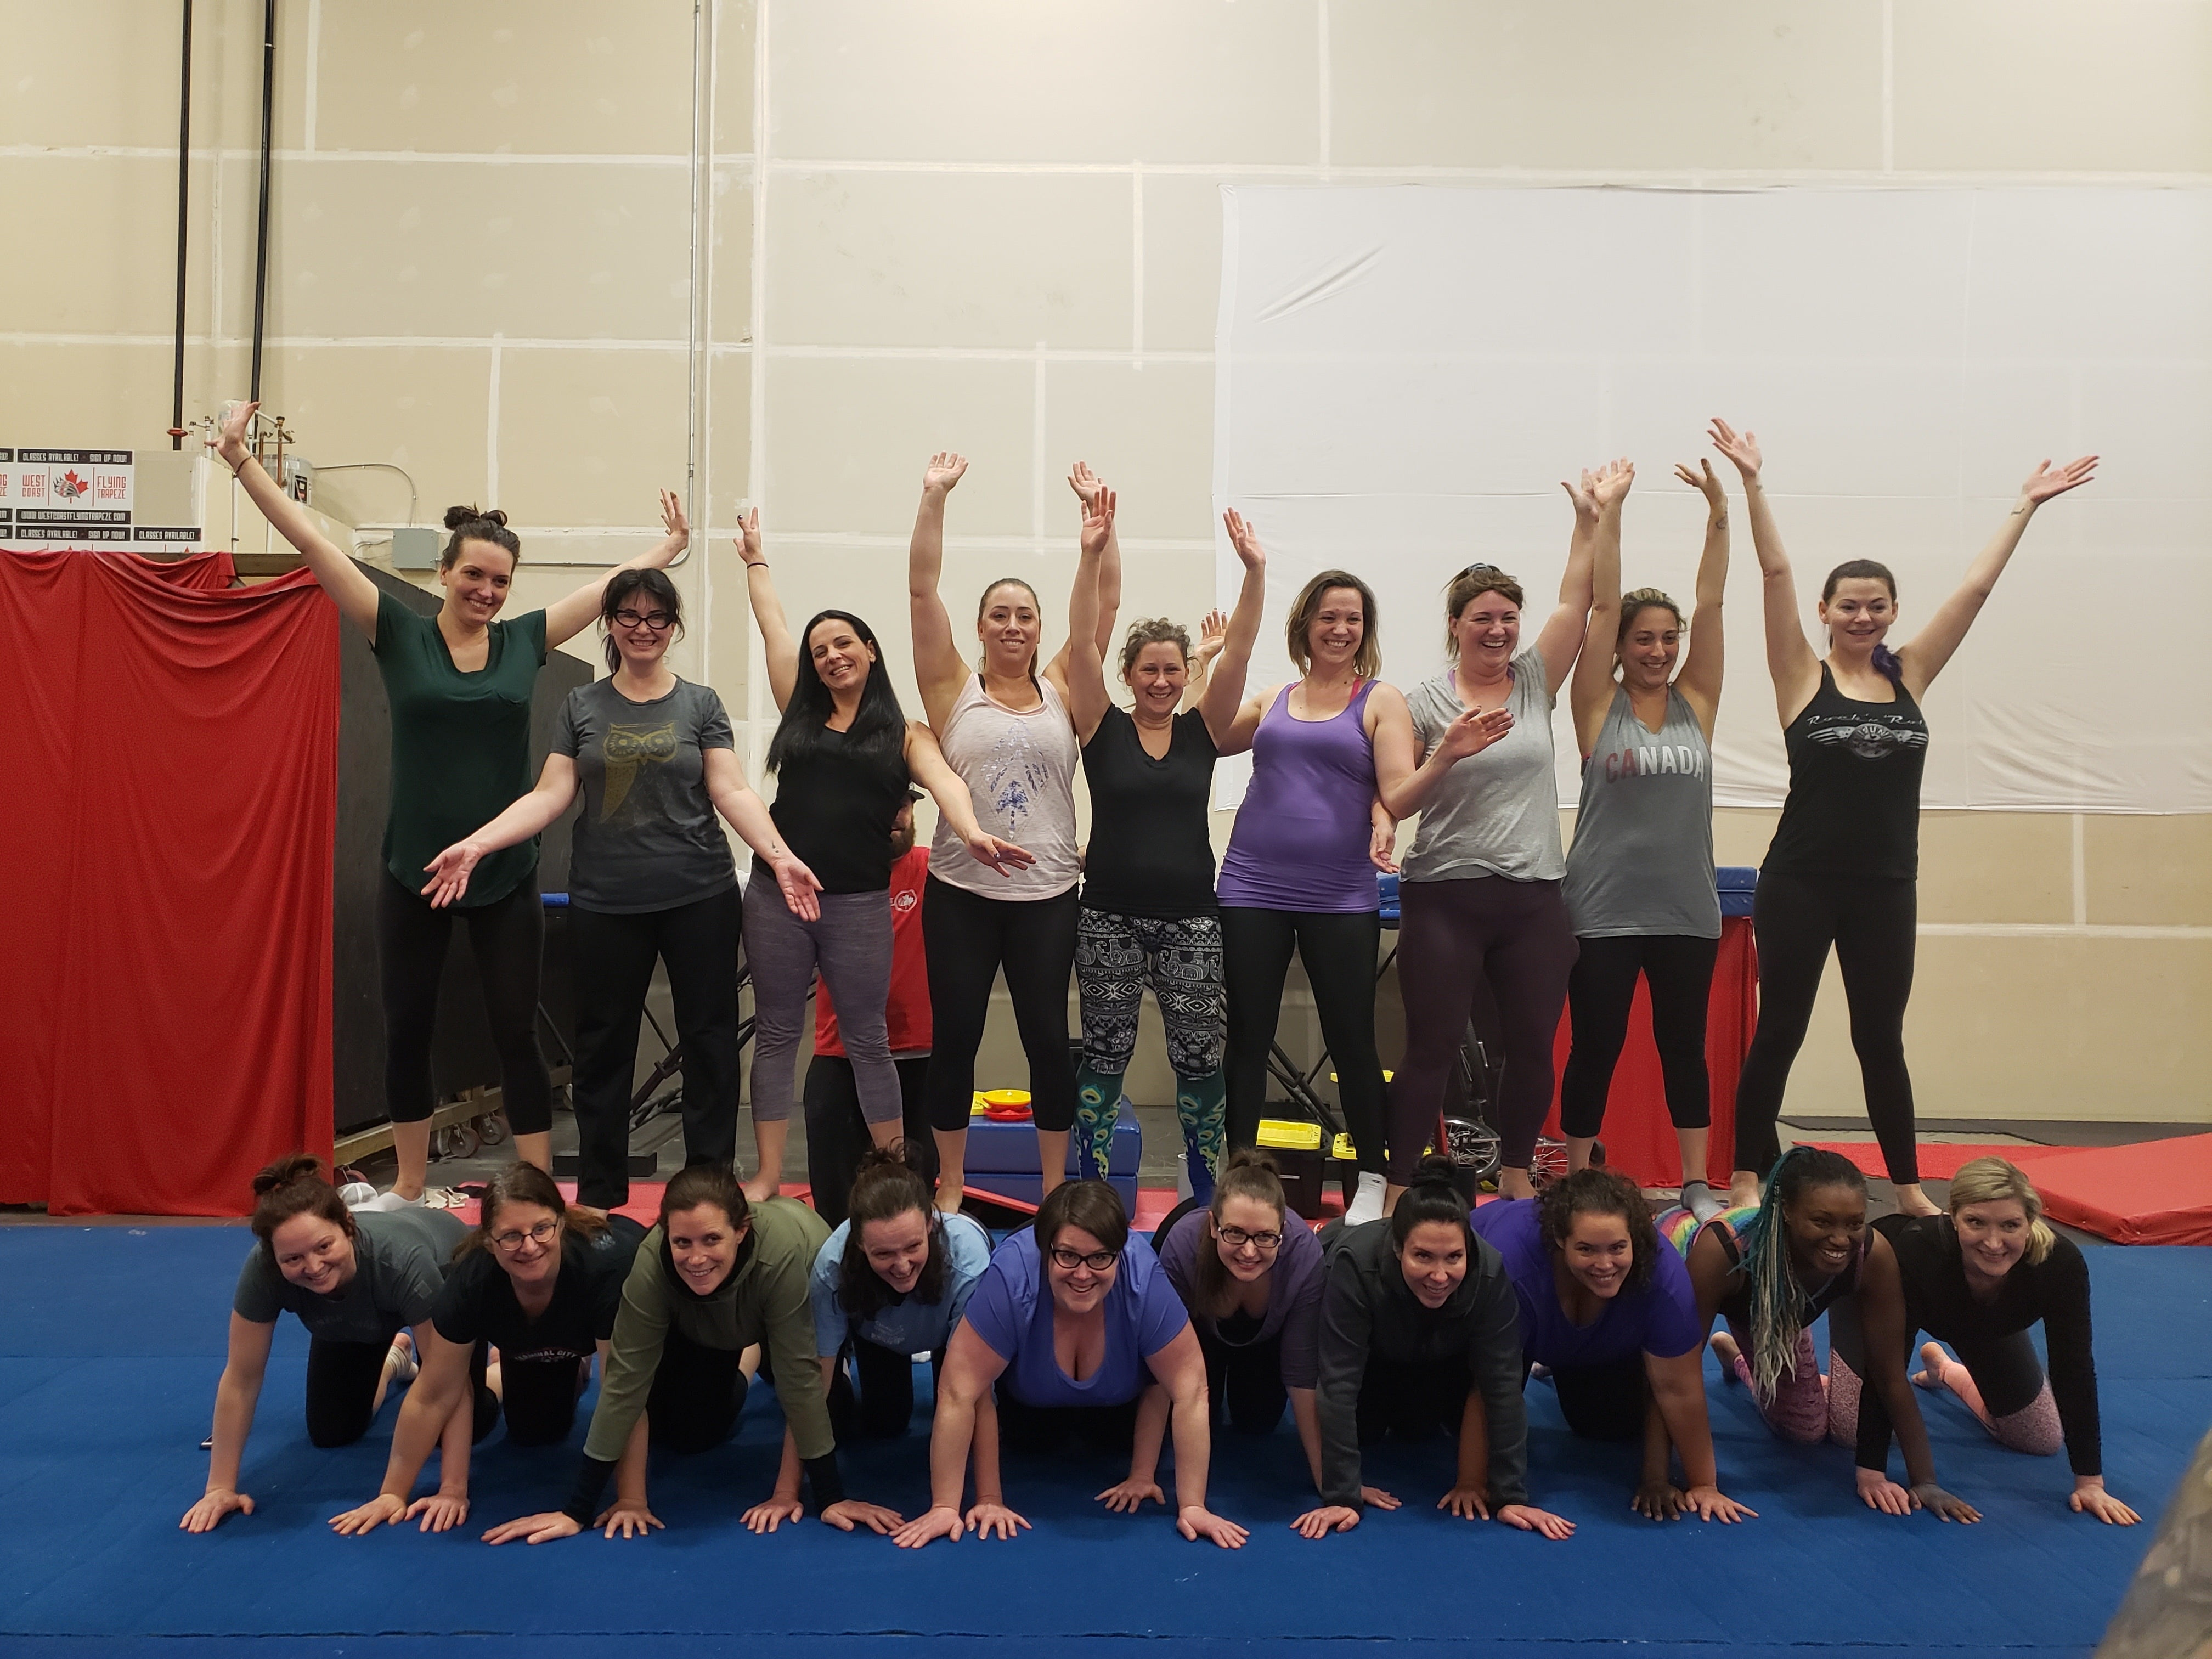 All Amateur Women Circus Pyramid